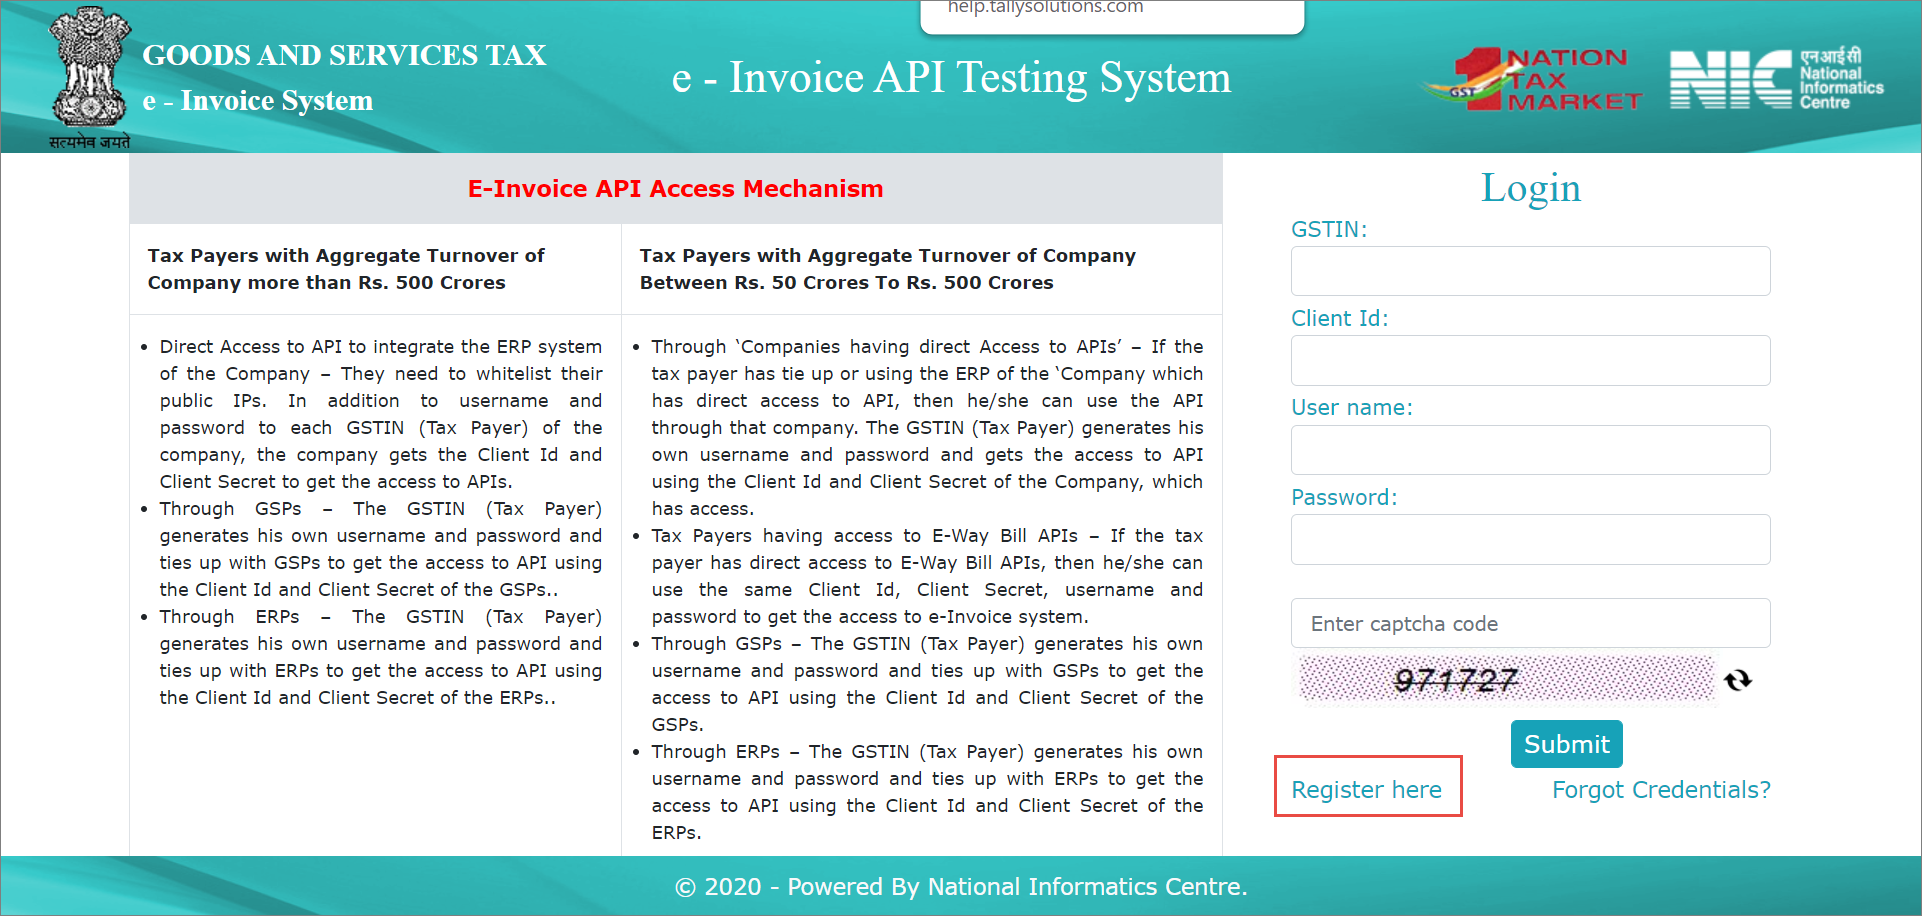 The e-Invoice API Testing System Screen on which Users Click Register Here